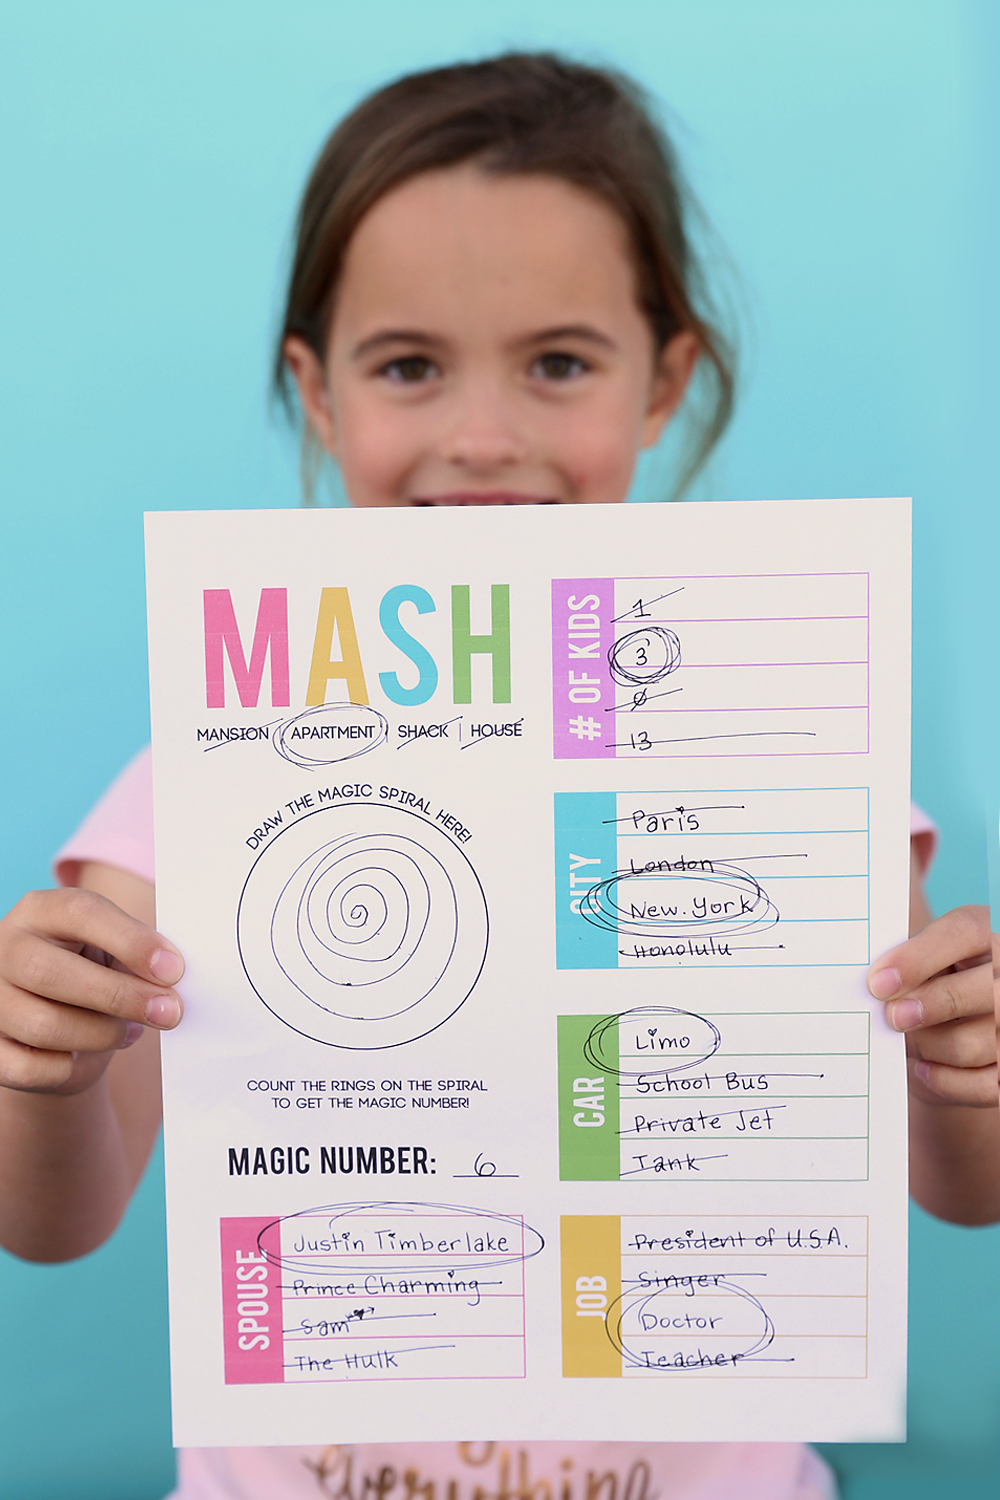 photograph relating to Mash Game Printable known as How in the direction of engage in MASH + a absolutely free printable activity sheet! - Its